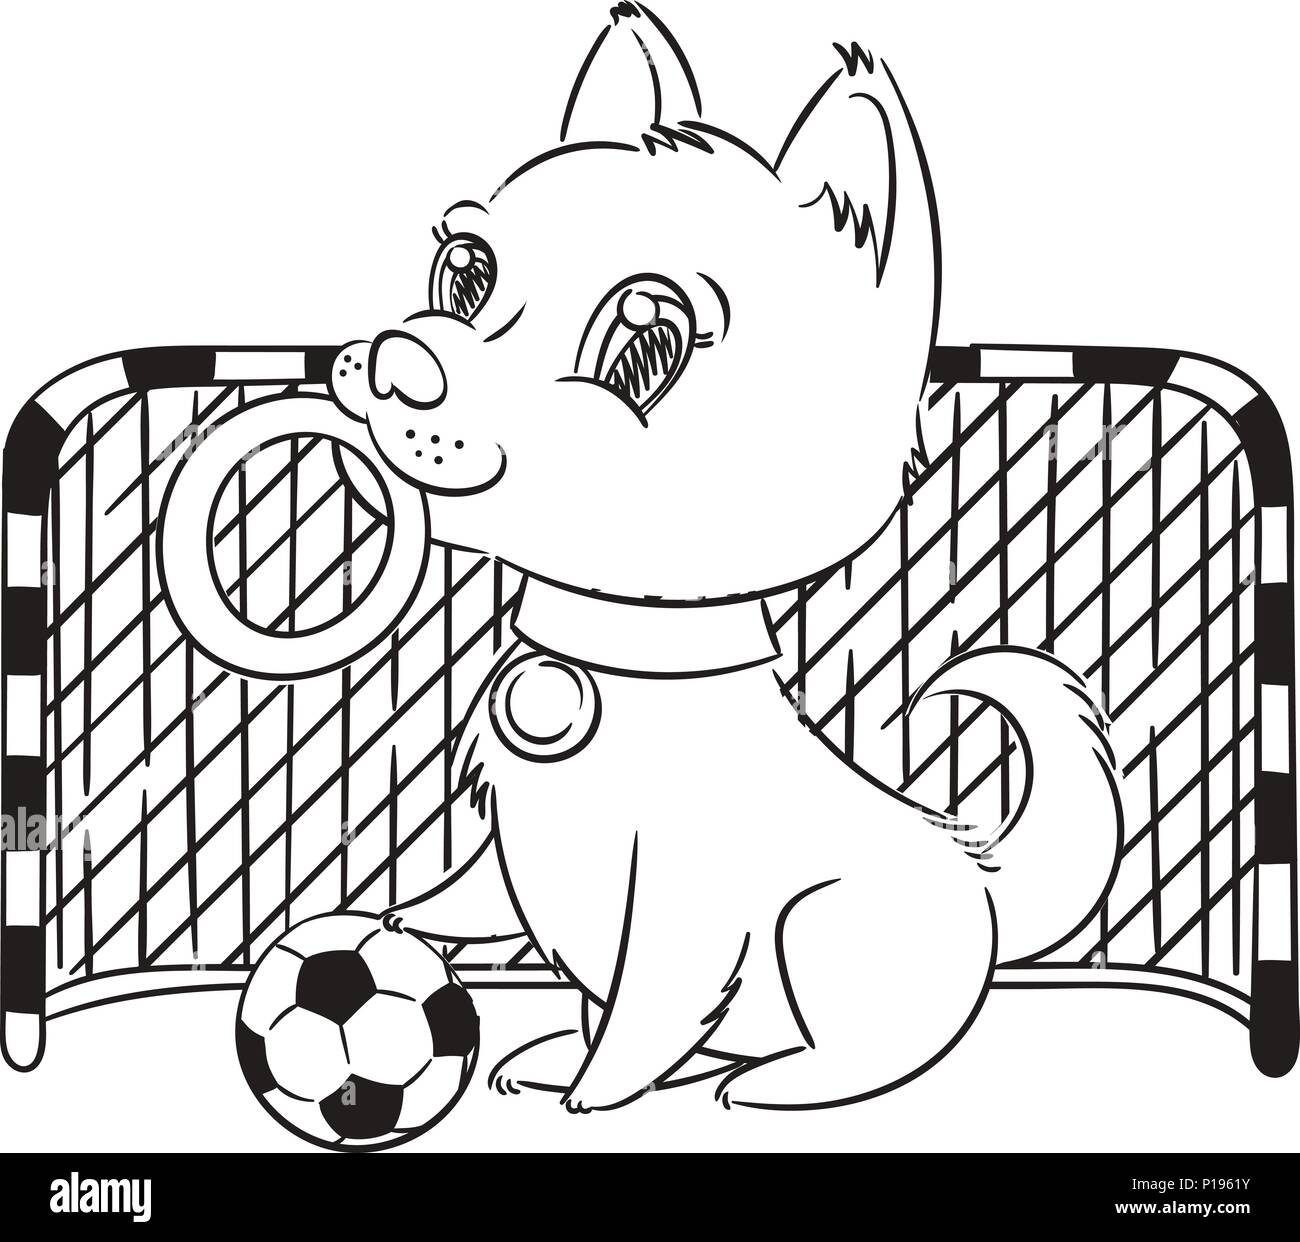 Vector Illustration With Cute Puppy With A Soccer Ball Card Or